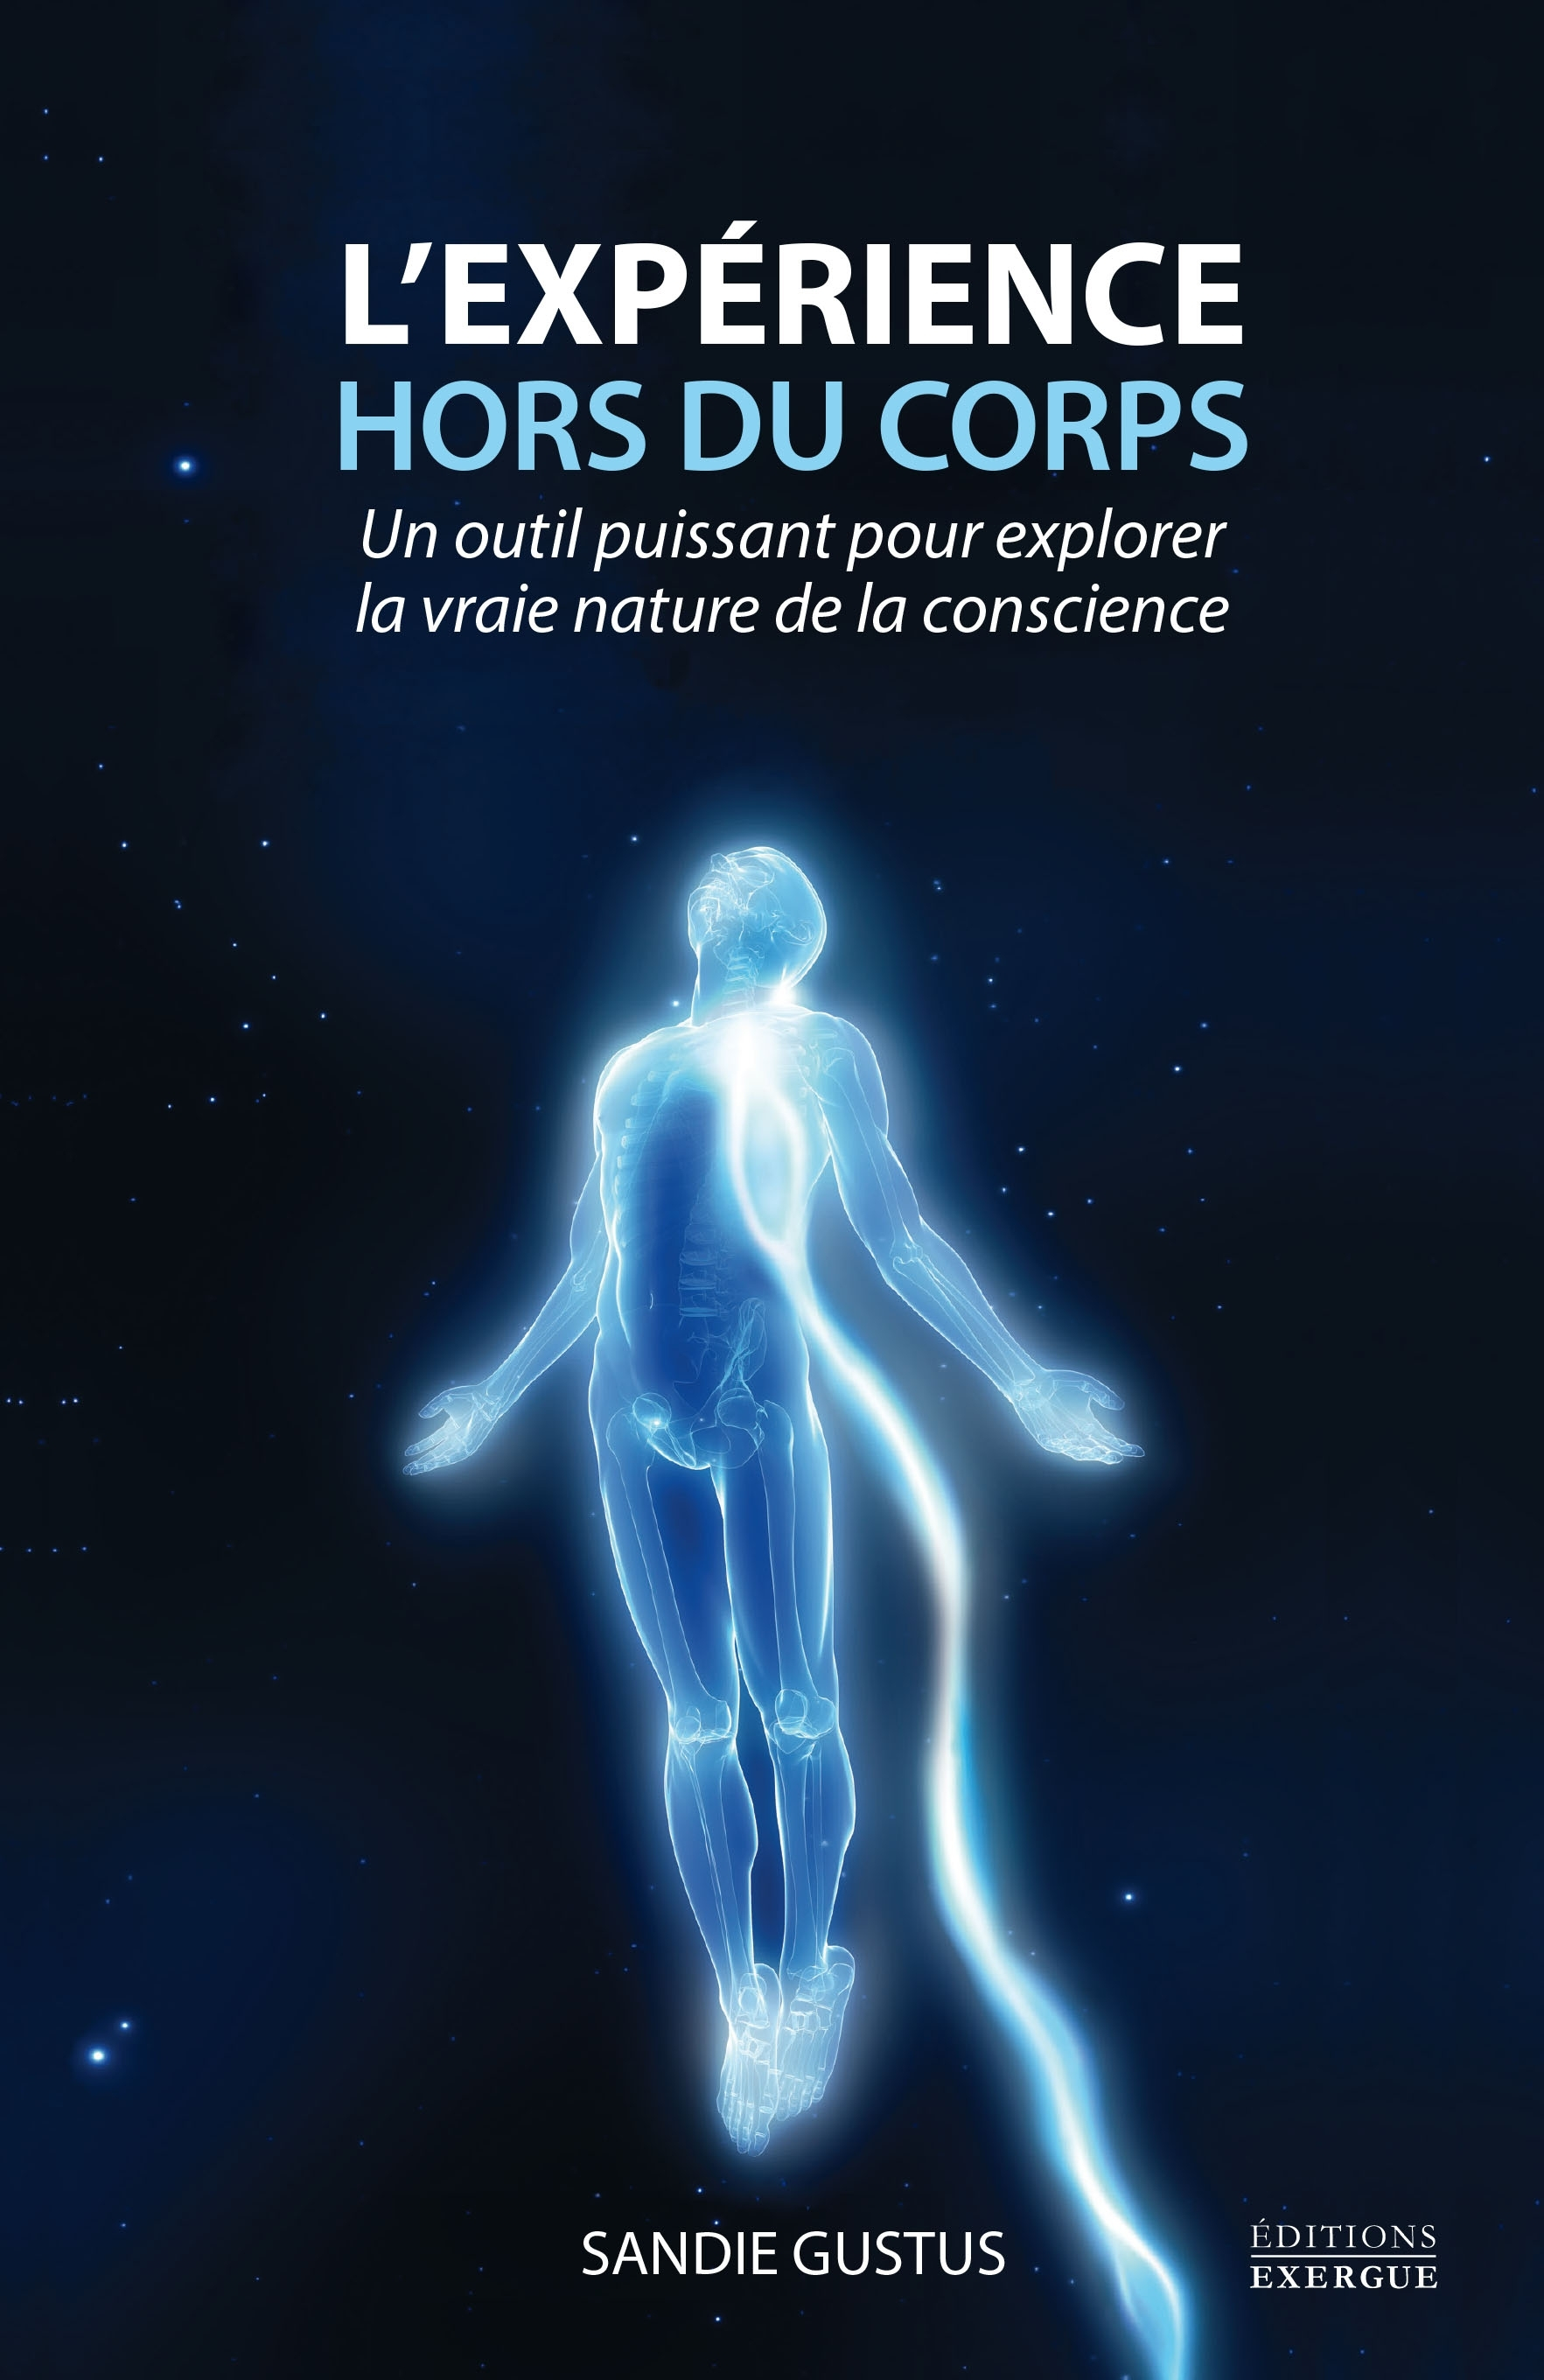 L'EXPERIENCE HORS DU CORPS